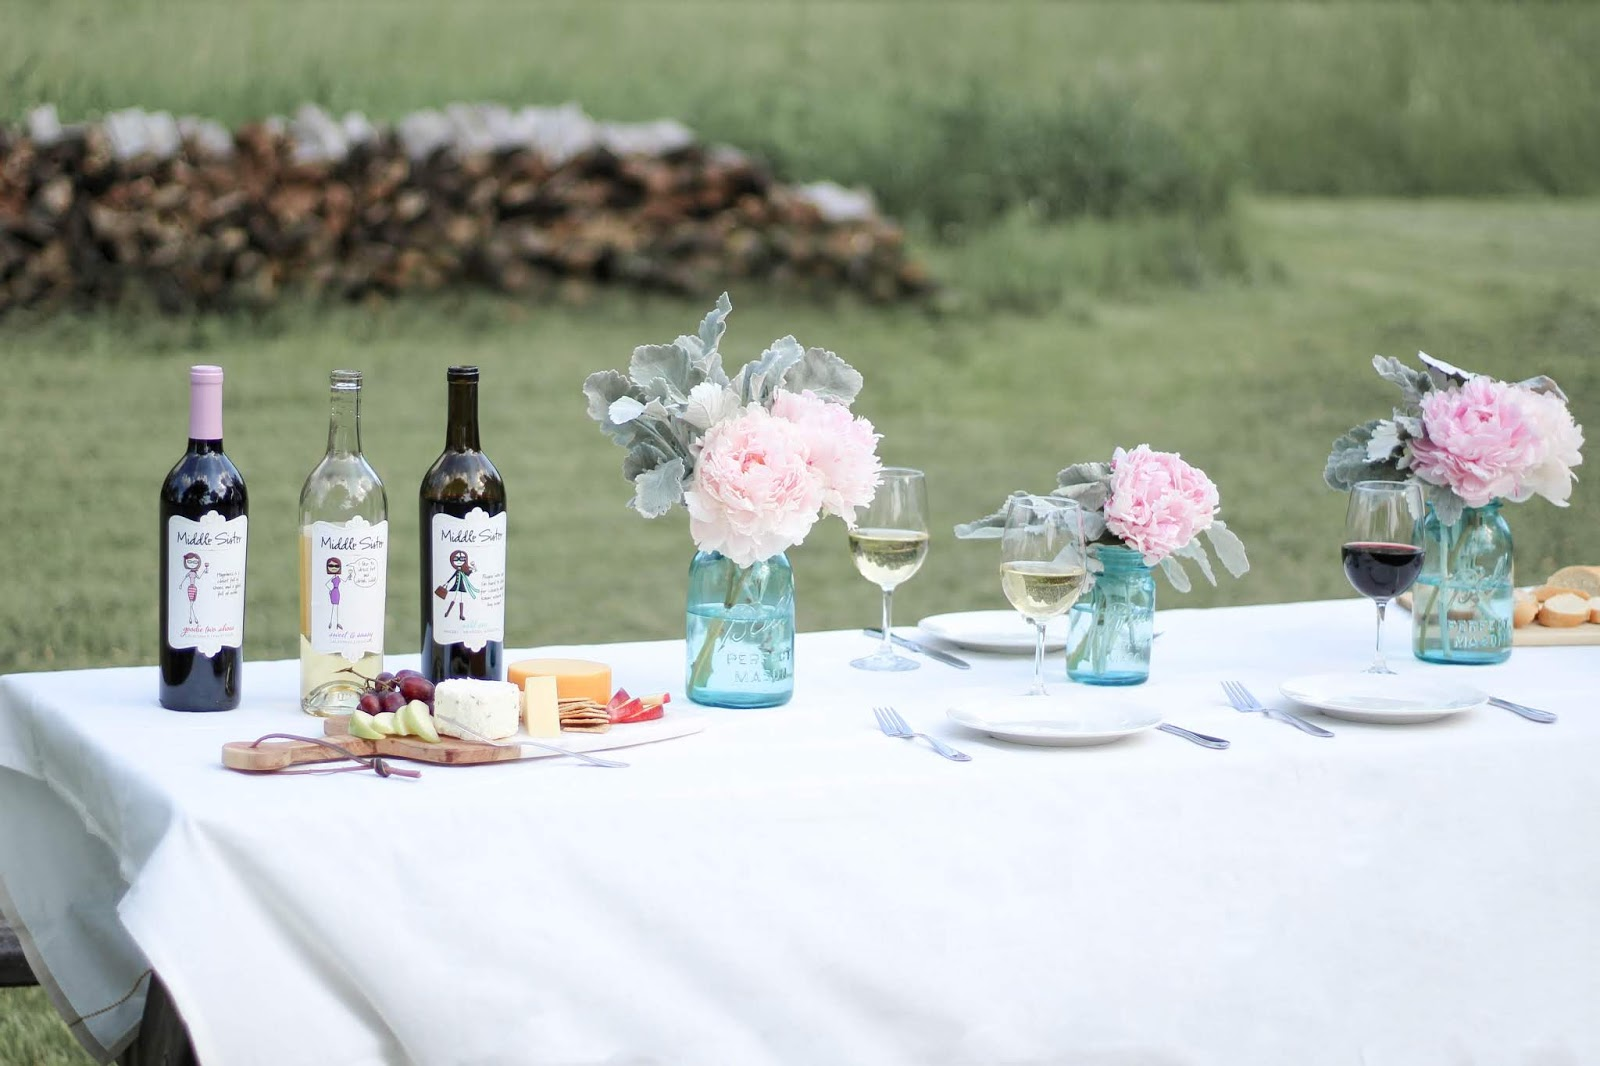 STYLED GIRLS' DAY PICNIC | WINE & CHEESE PLATE + SUMMER